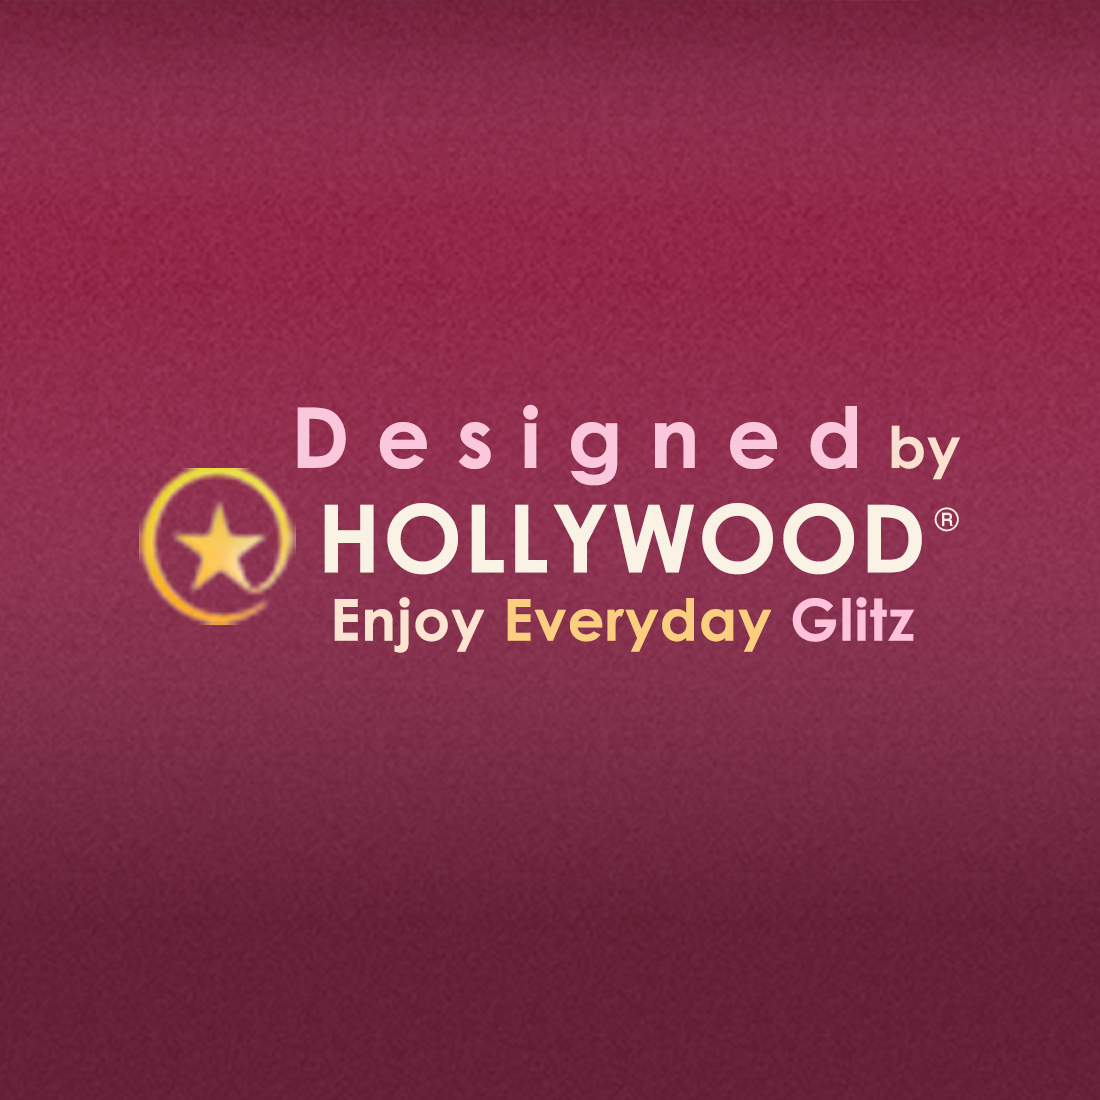 Designed by Hollywood - Website Design